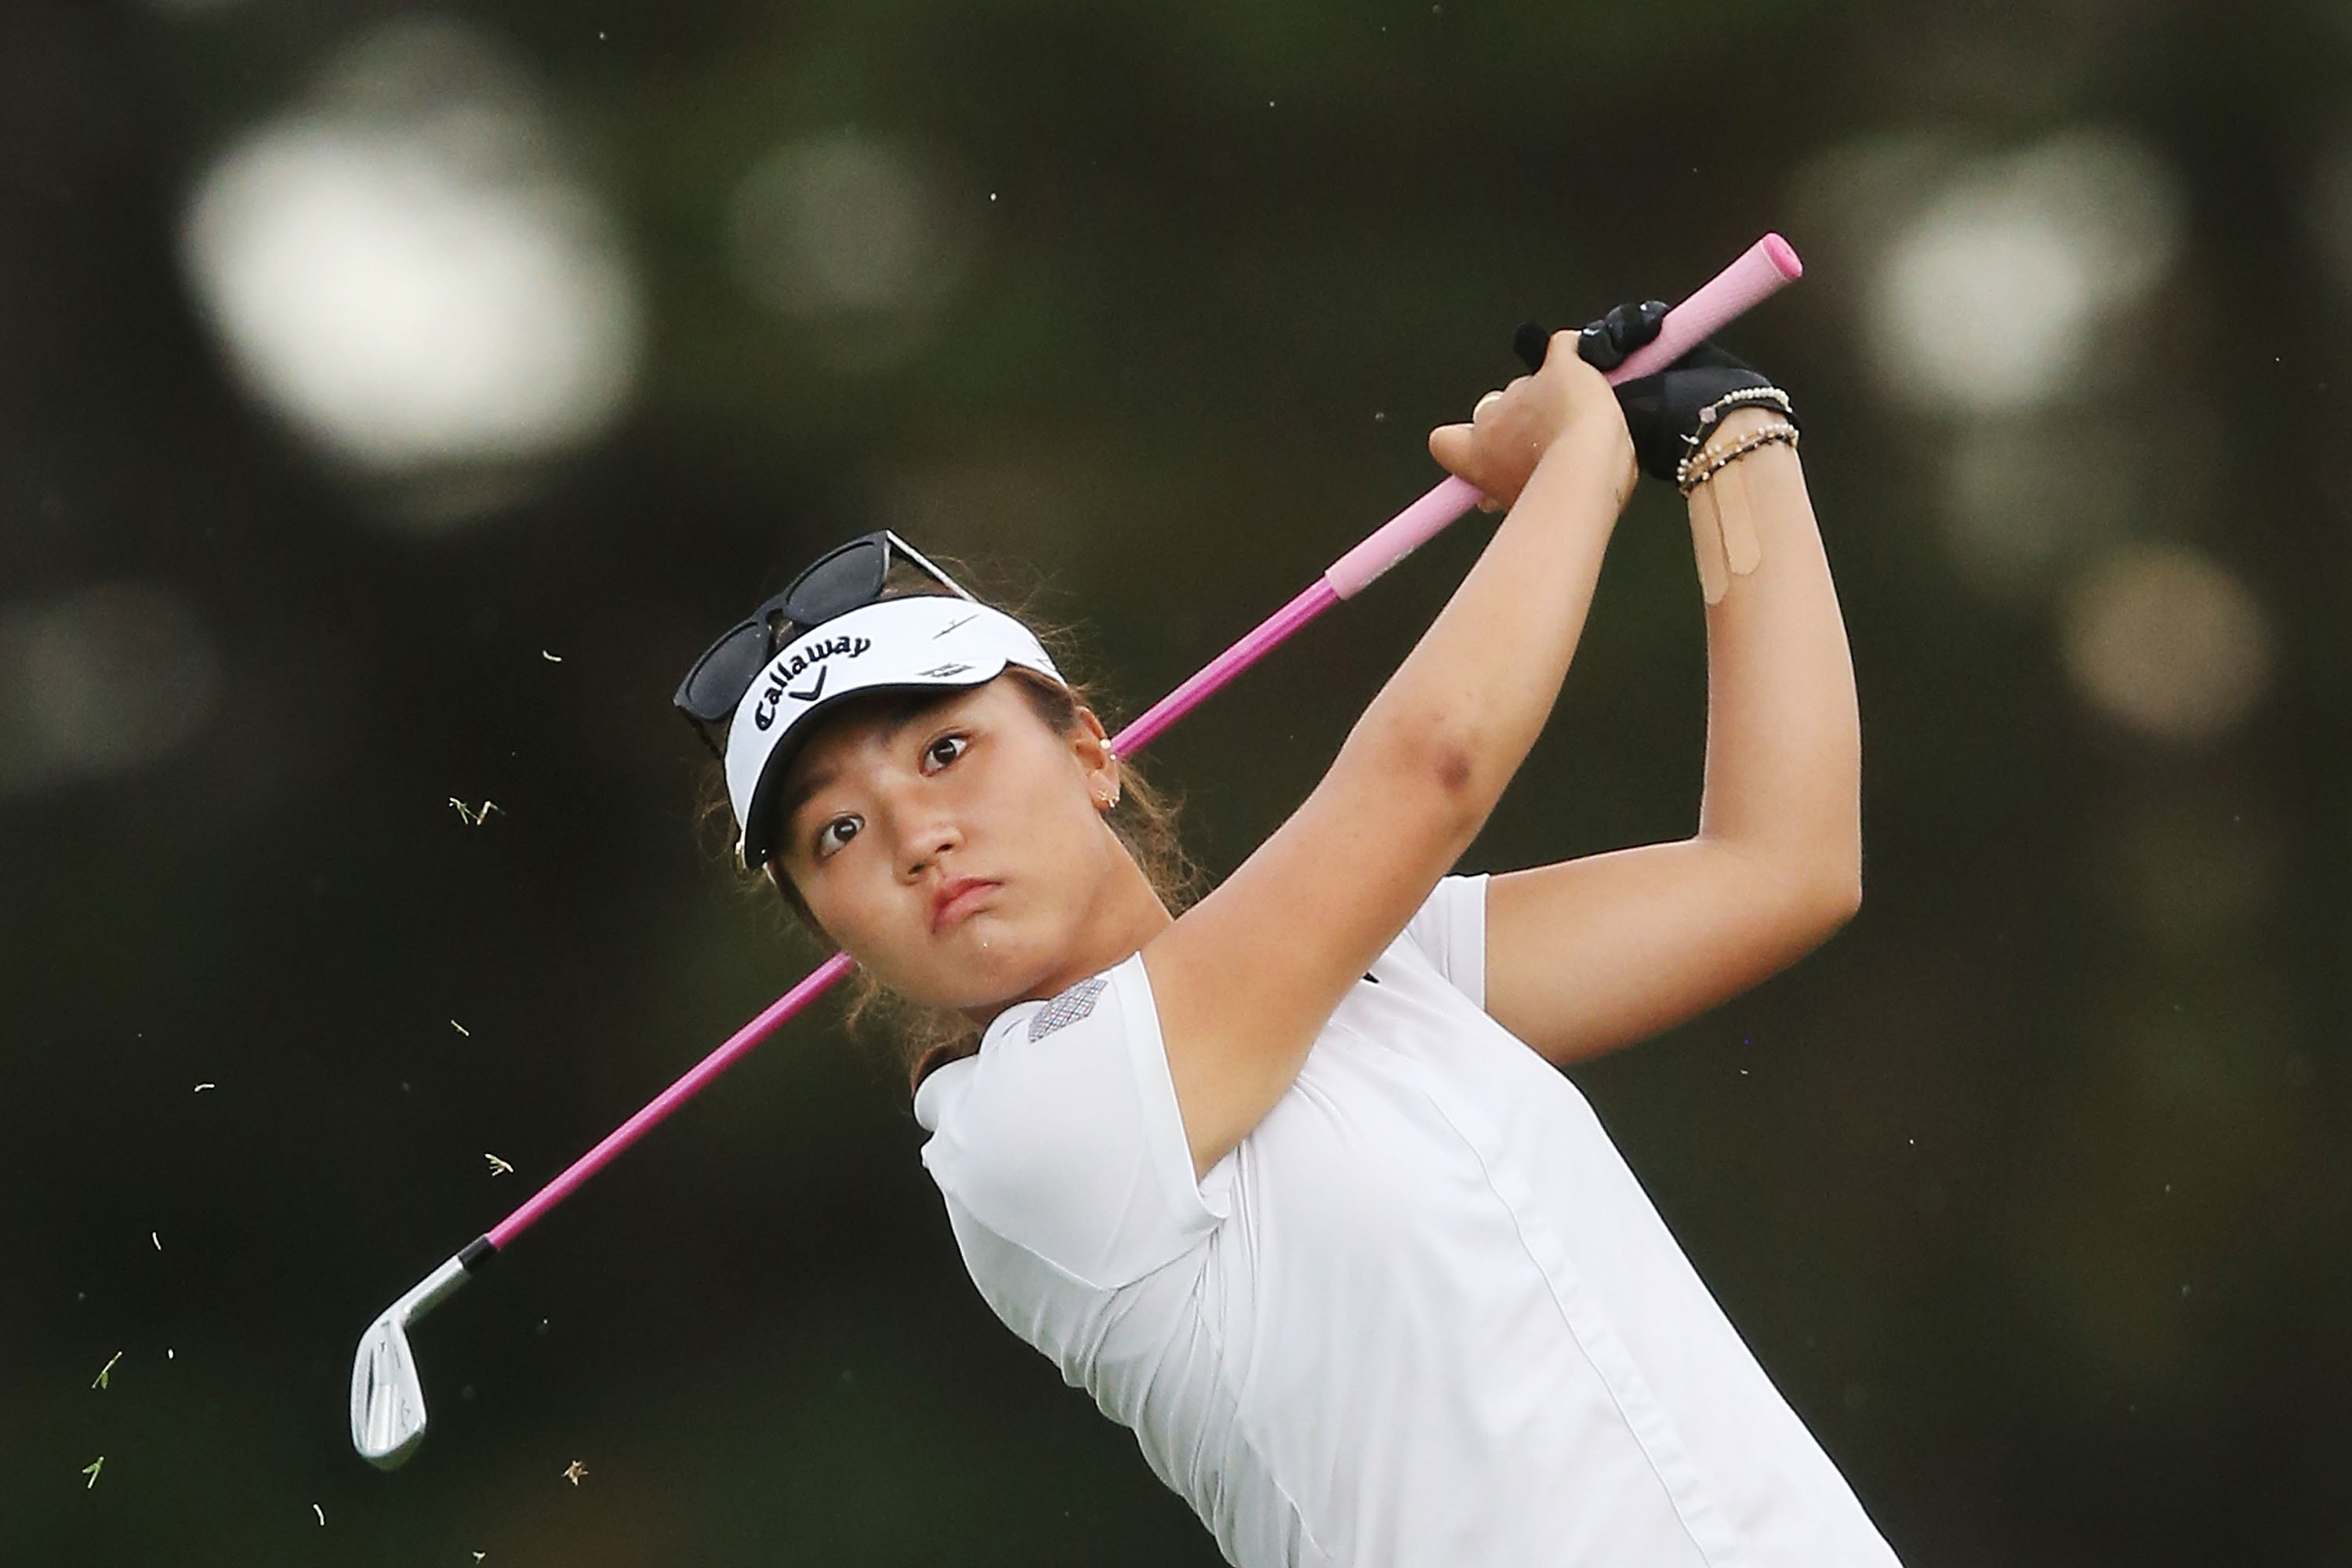 Lydia Ko hits an approach shot on the 12th hole Sunday during the final round of the LPGA Australian Open at Royal Melbourne.